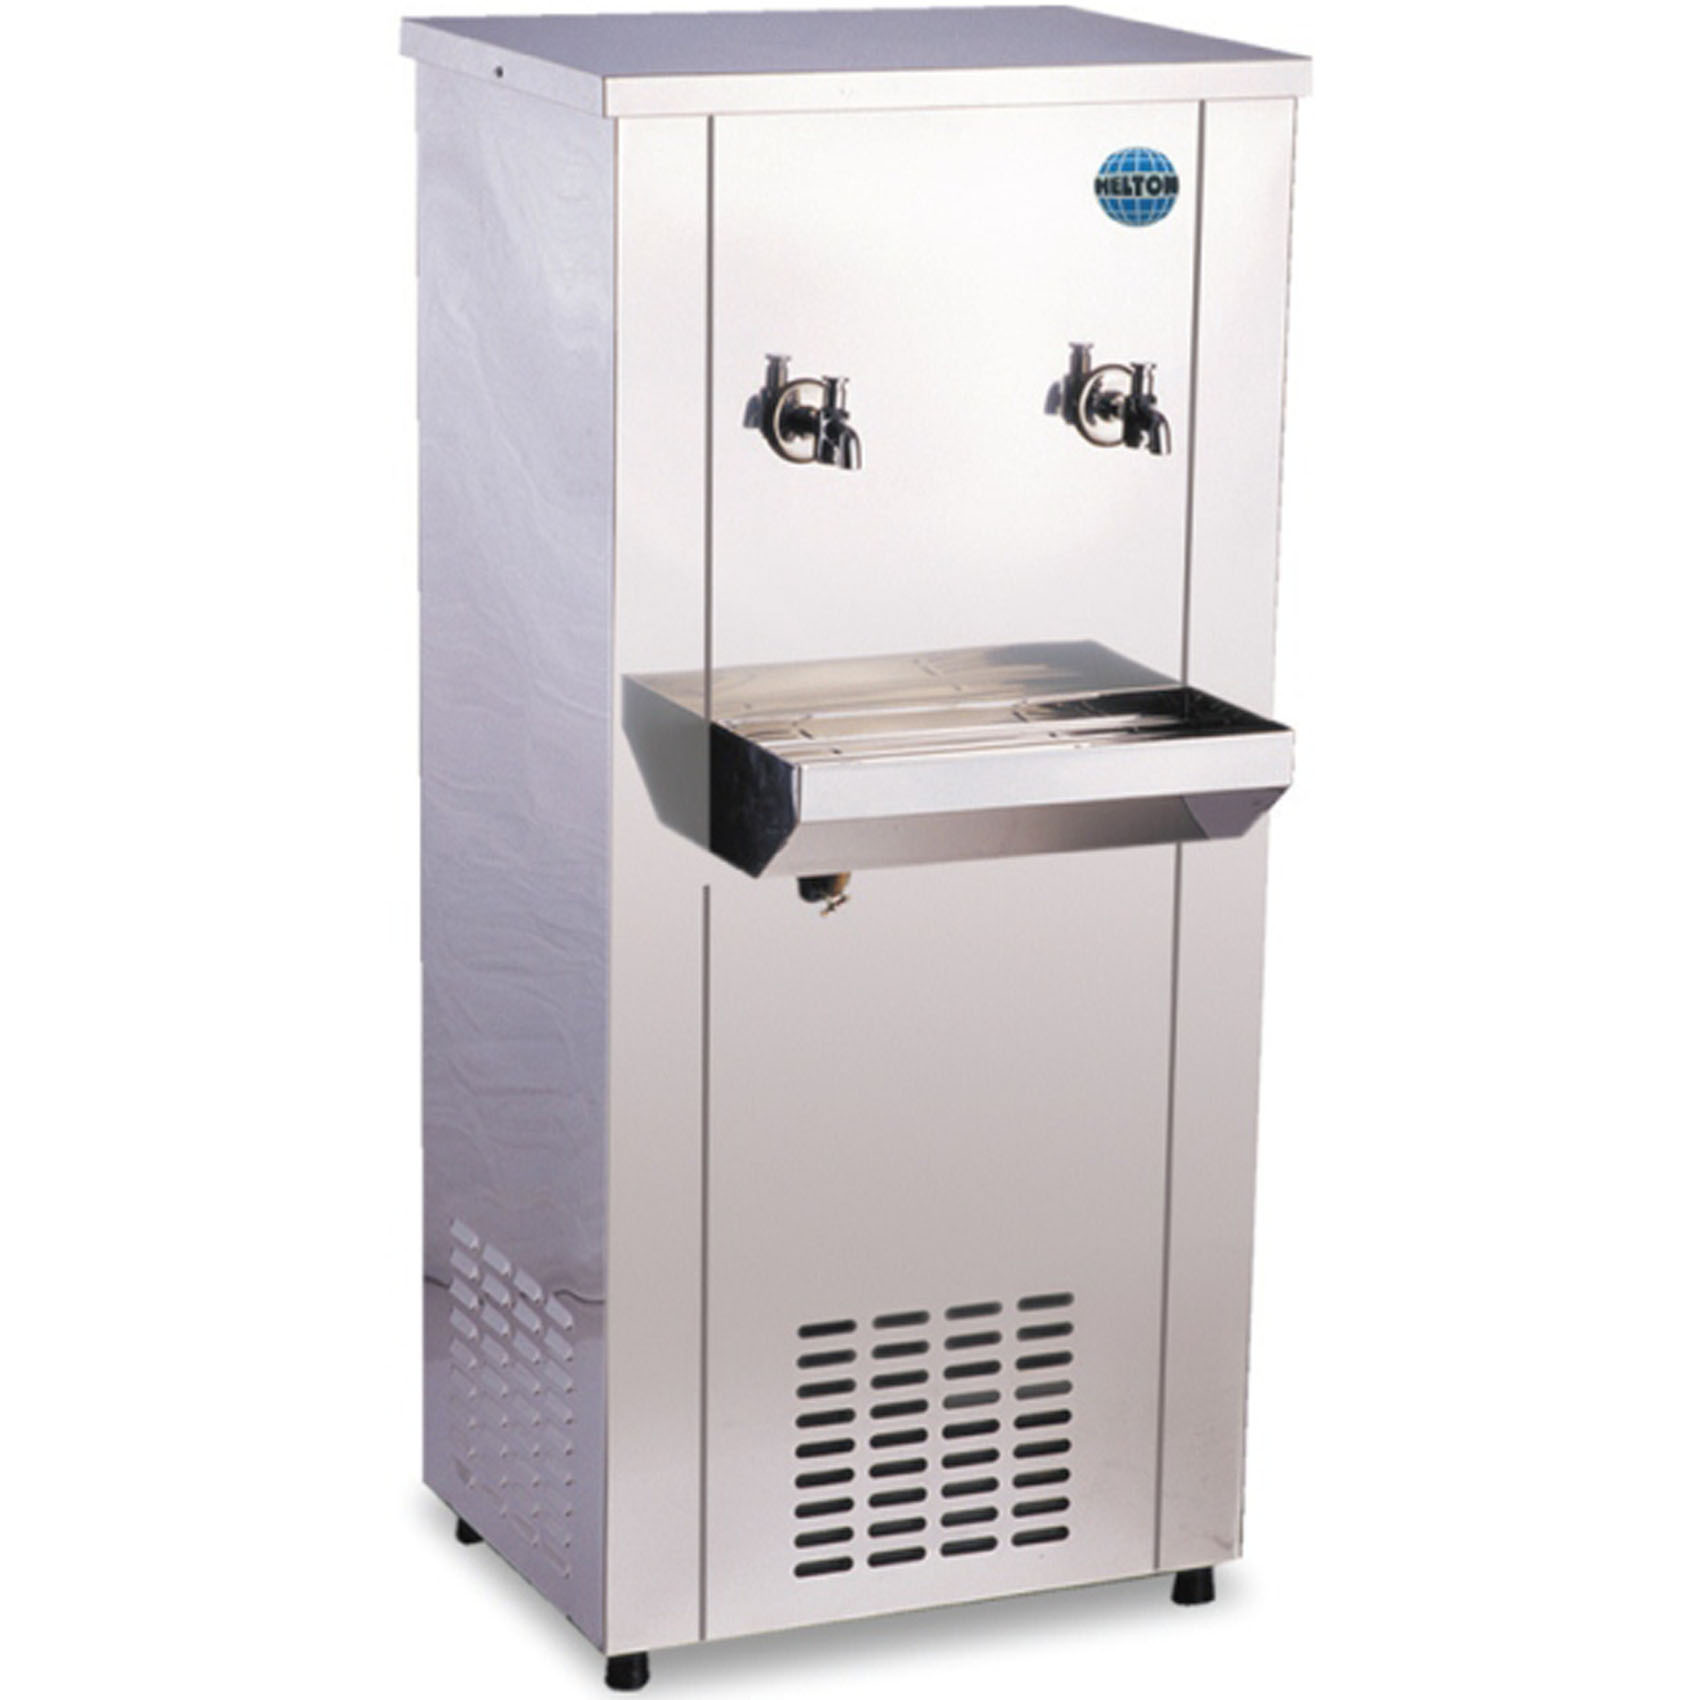 HELTON WATER COOLR 1126HT25T2SS 25L